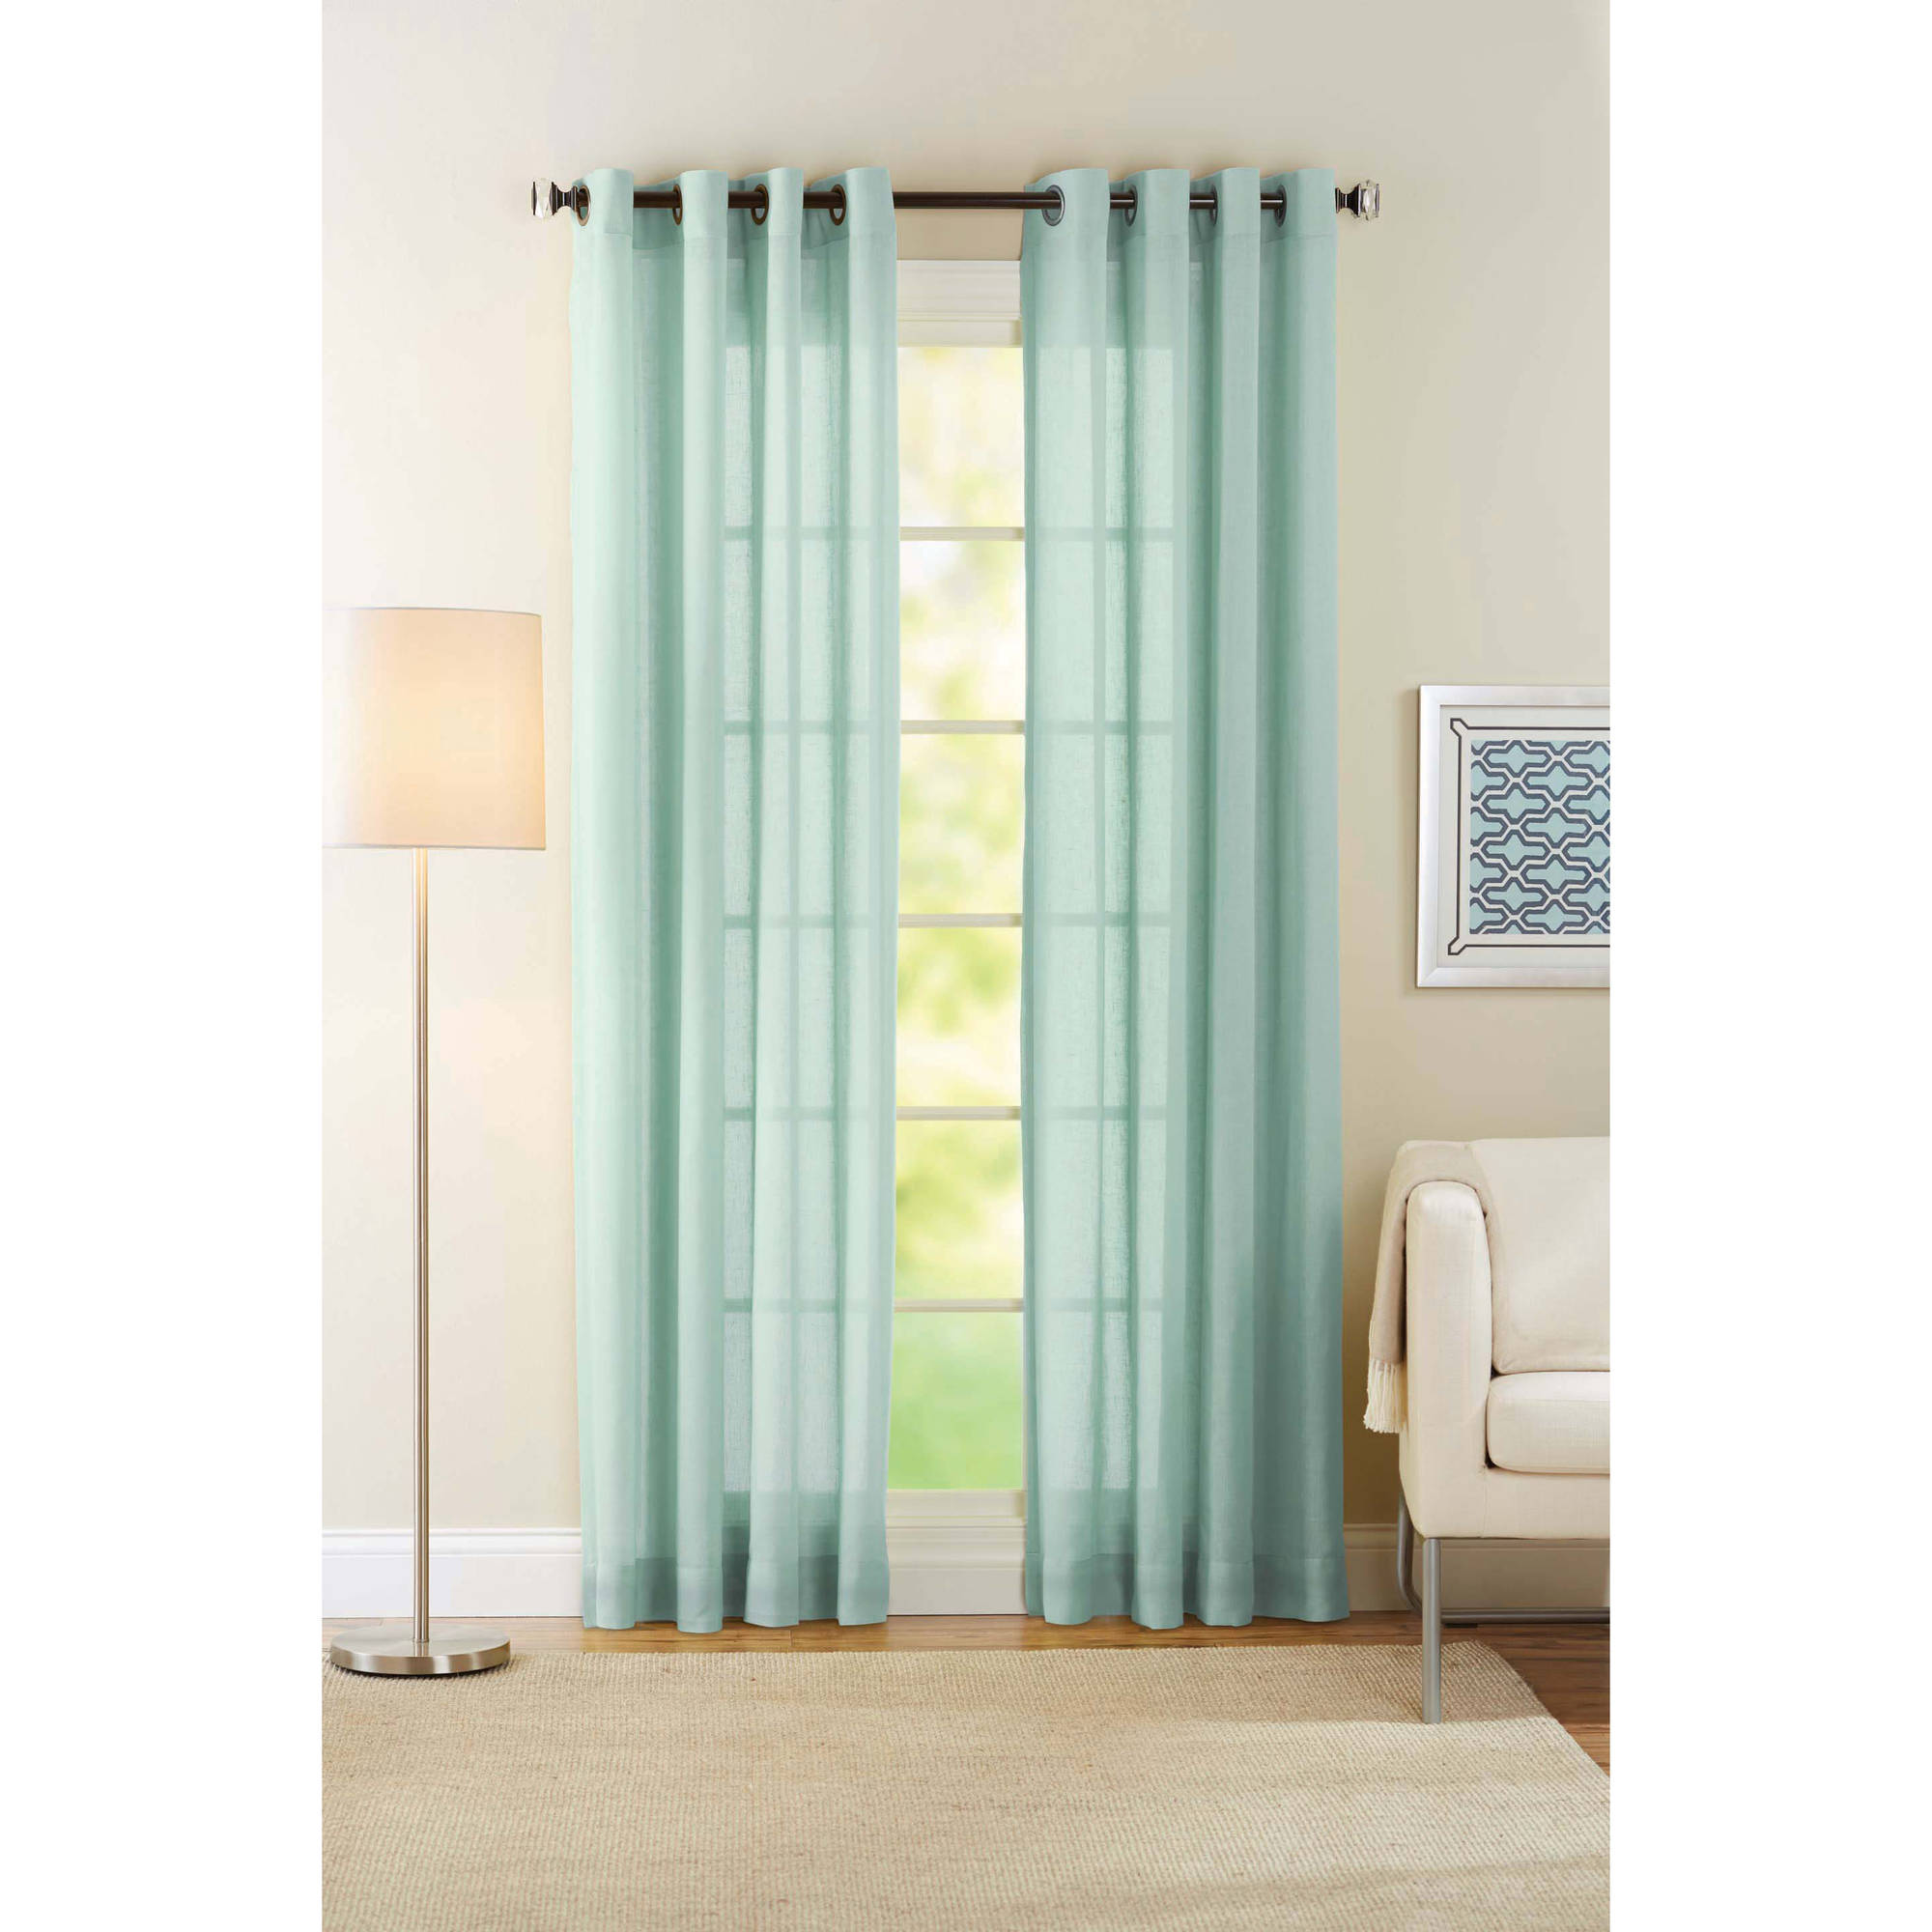 Walmart lime green curtains - Walmart Lime Green Curtains 1